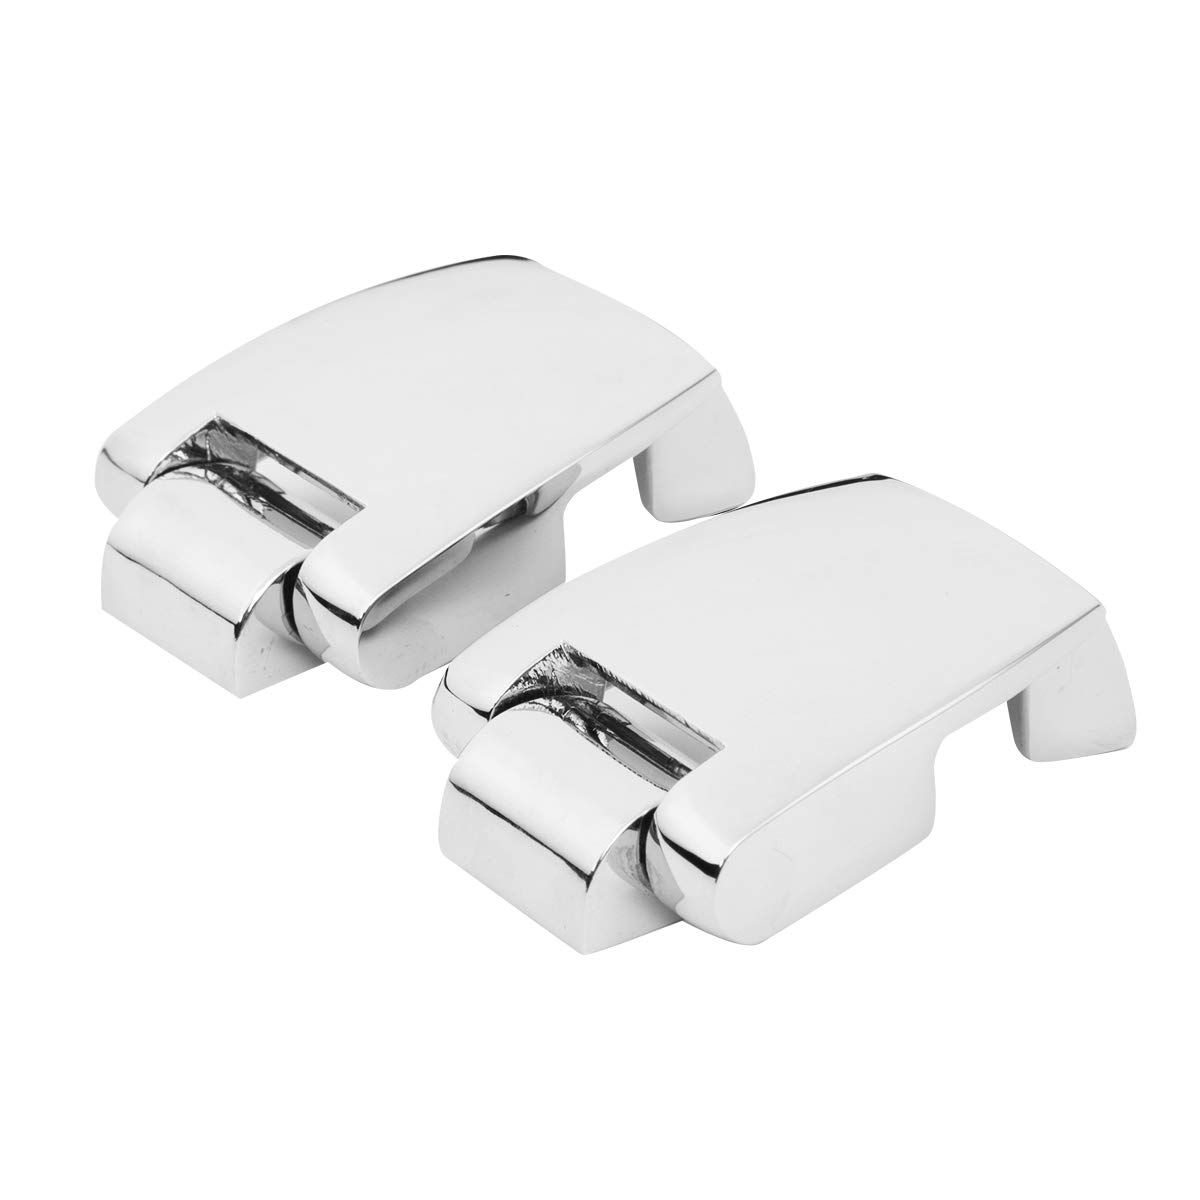 XMT-MOTO Tour-Pak Hinges fits for Harley Davidson Touring and Trike Models Equipped with Razor-Pak Chopped or King Tour-Pak Luggage 1988-2013,Mirror-Chrome Finish,Sold as Pairs